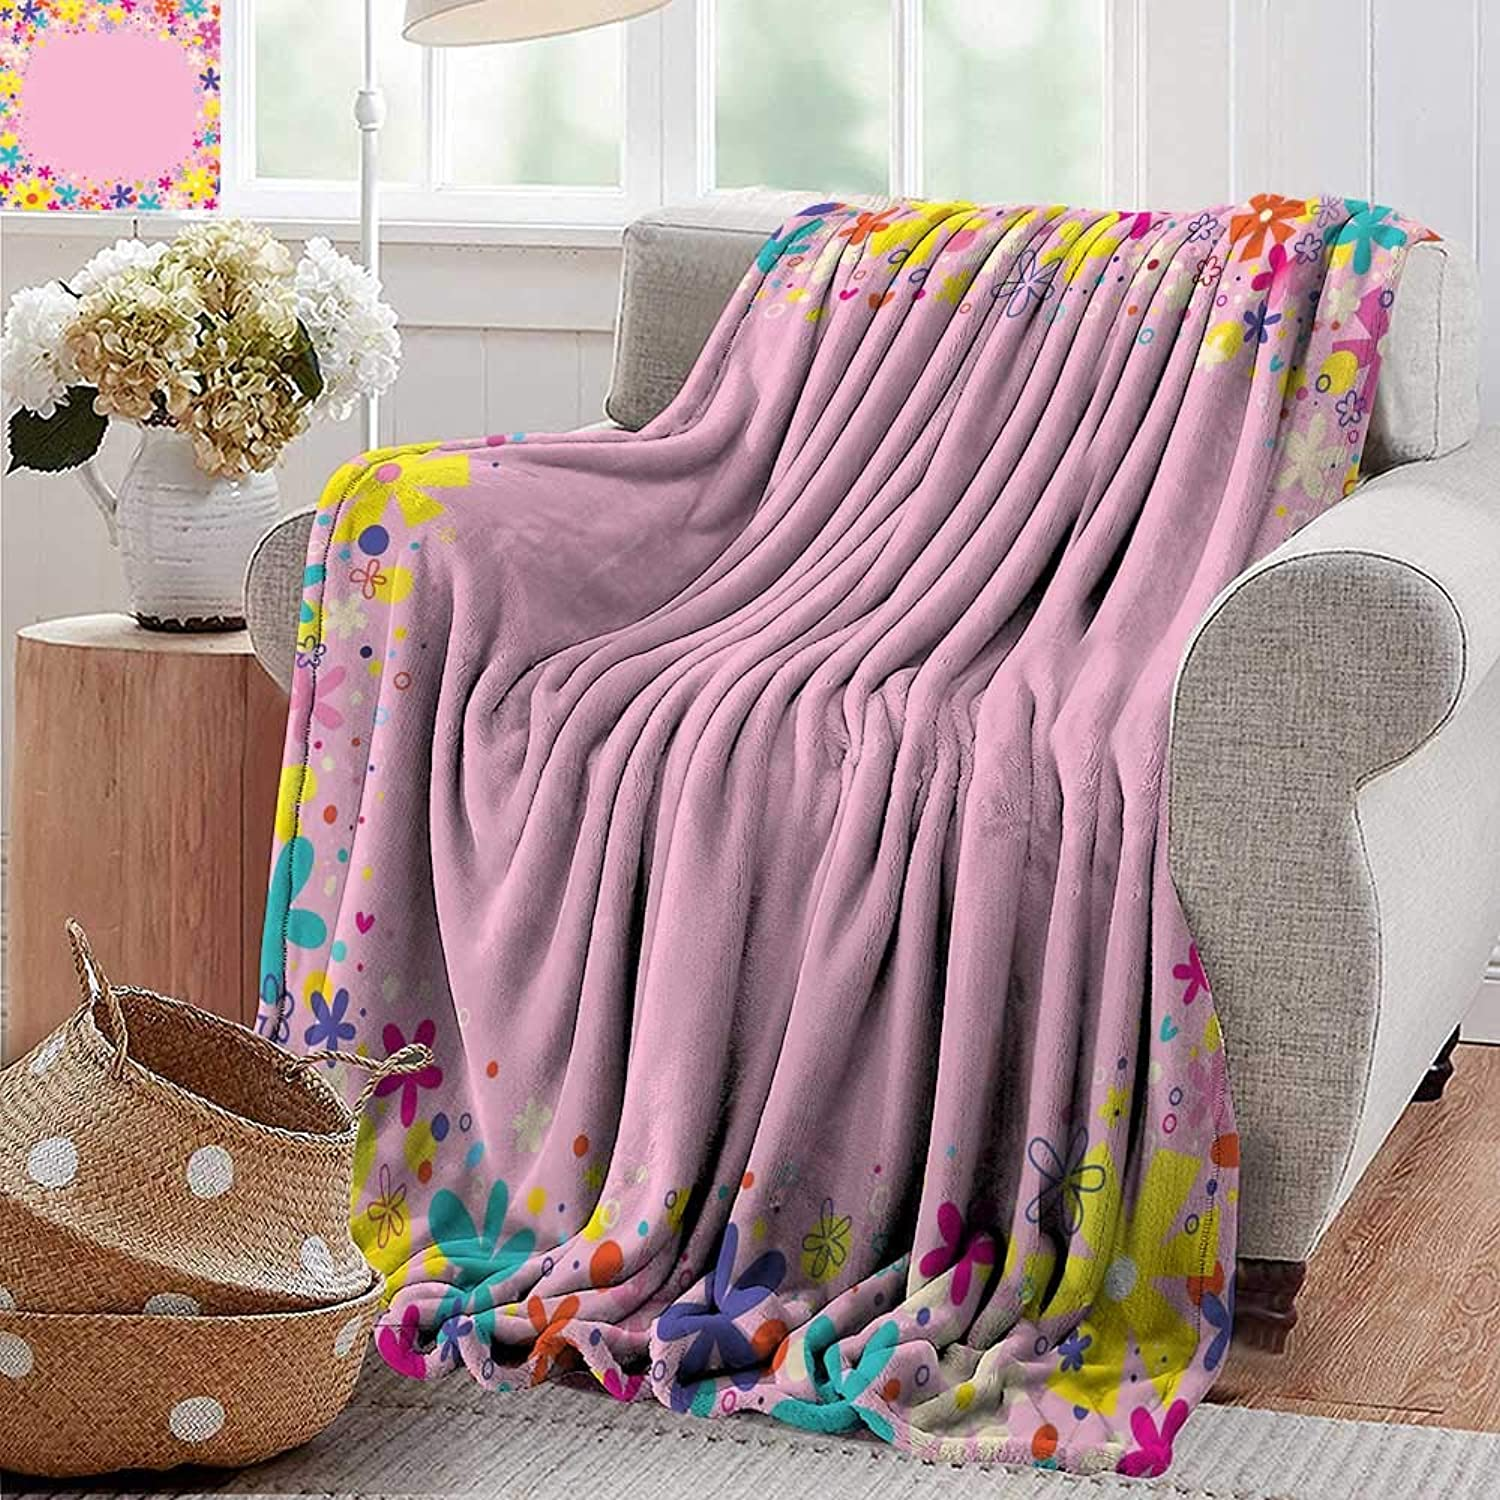 PearlRolan Throw Blanket,Kids Party,Girls Birthday Design with Doodle Style Blooming Flowers on Pink Backdrop,Pink Multicolor,Sofa Super Soft, Plush, Fuzzy Microfiber Throw Reversible,Comfy 35 x60